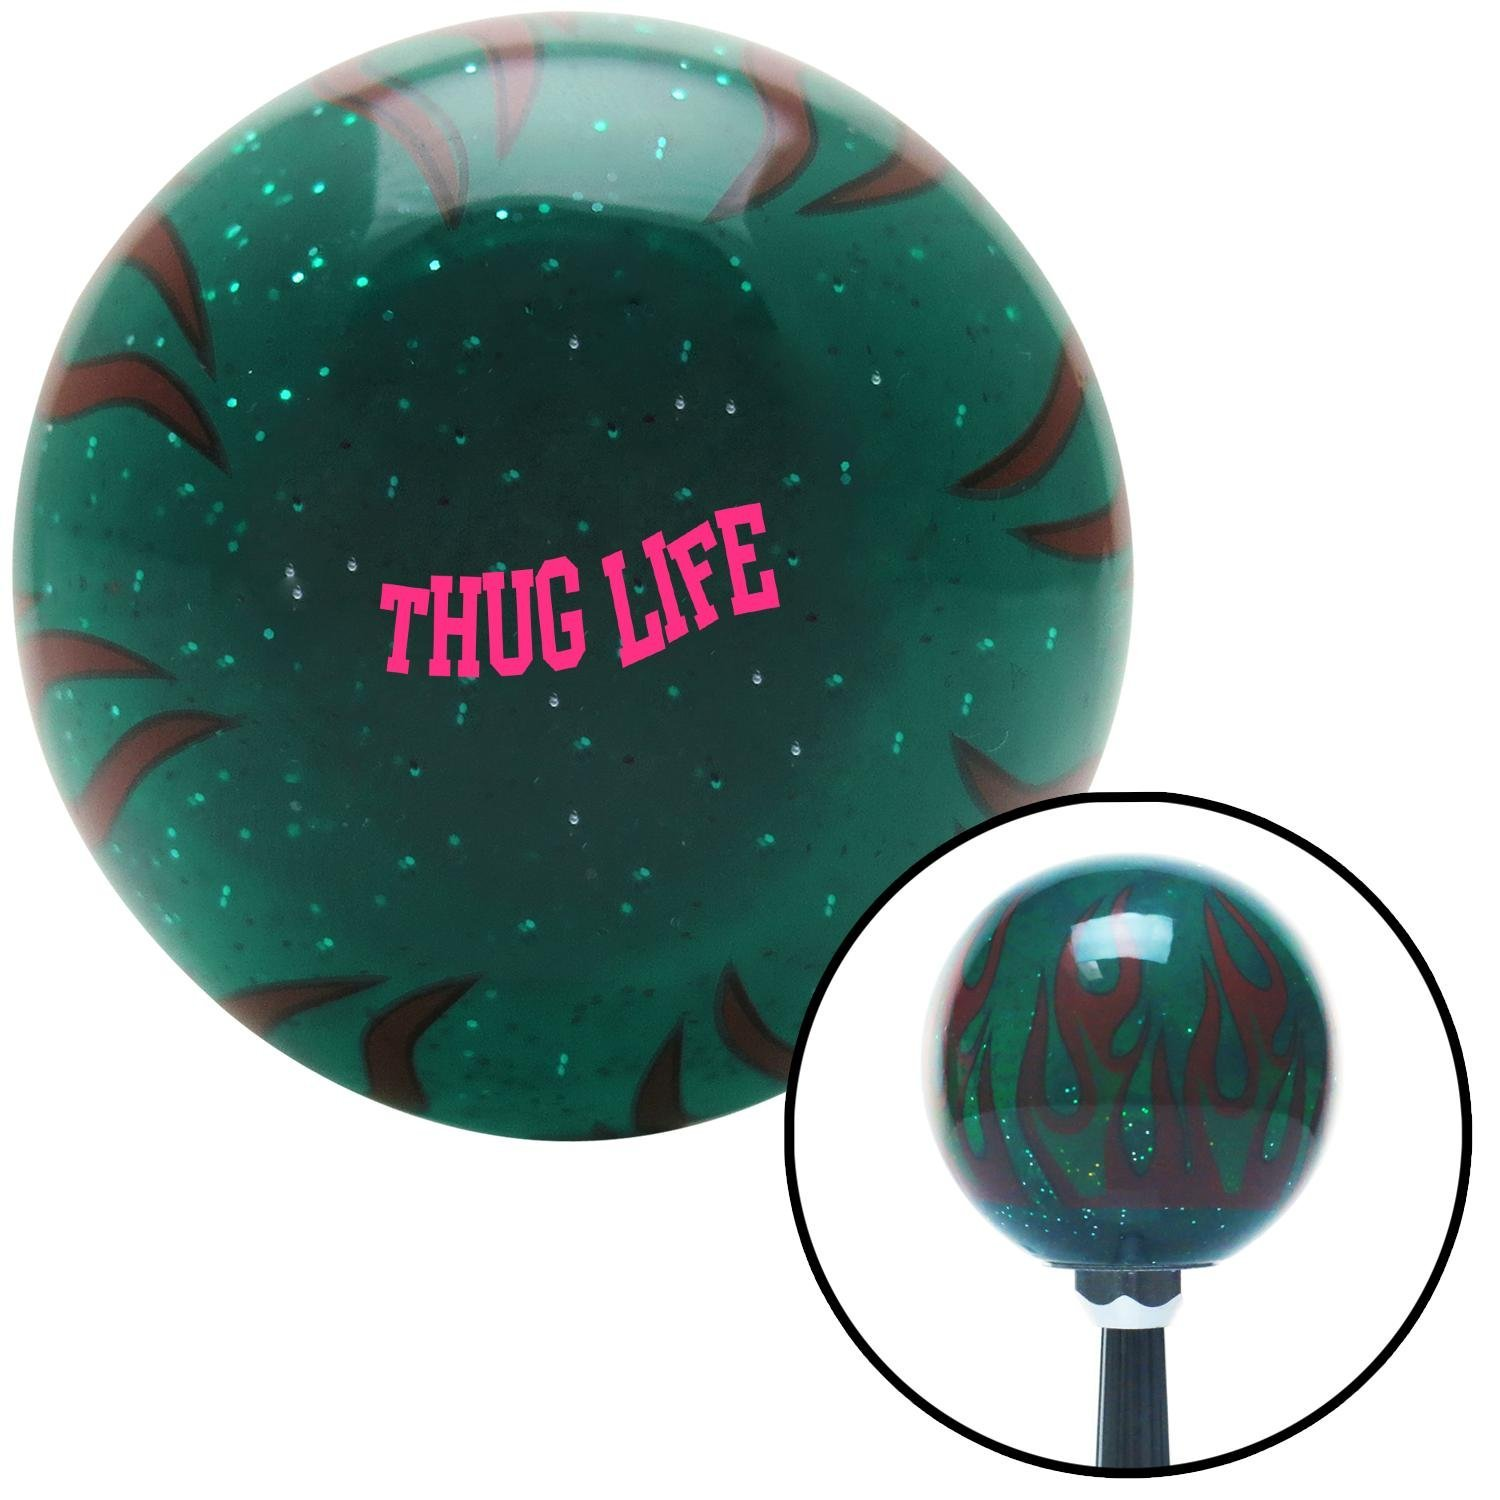 American Shifter 301066 Shift Knob Pink Thug Life Green Flame Metal Flake with M16 x 1.5 Insert